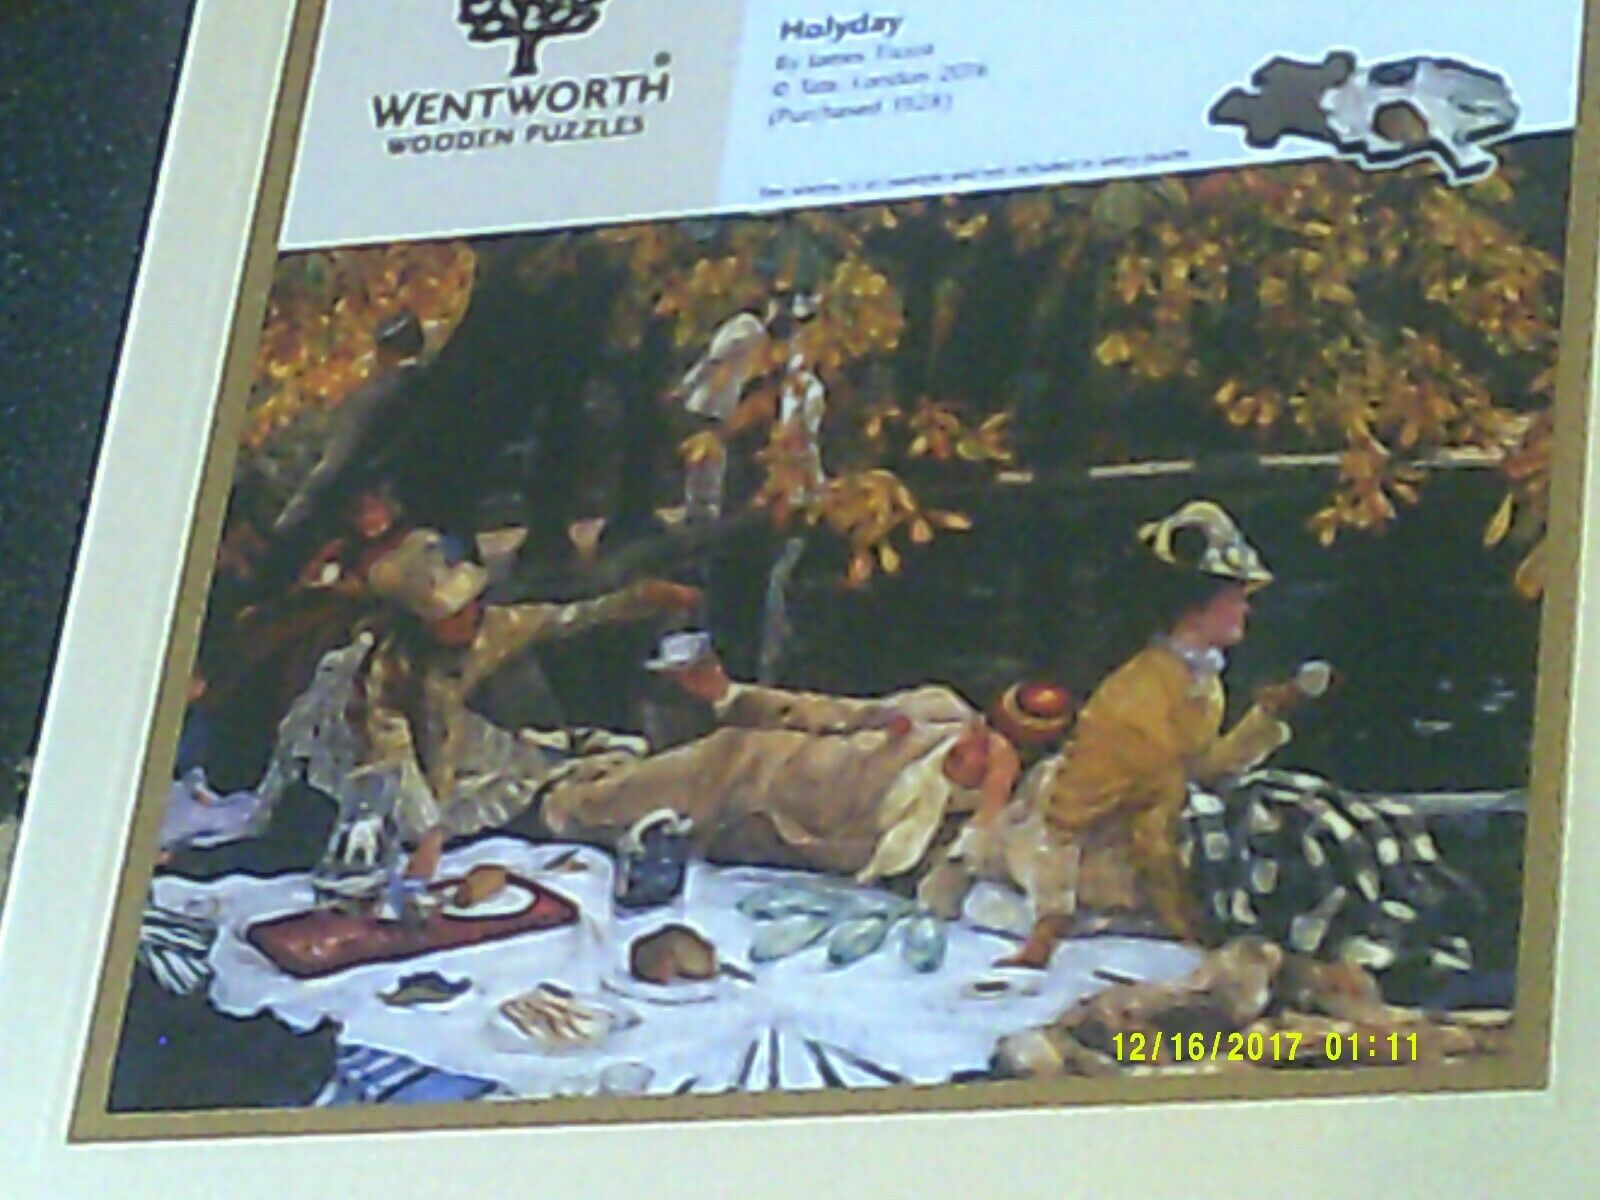 DISCONTINUED NEW SEALED WENTWORTH 250 'HOLYDAY' BY JAMES TISSOT